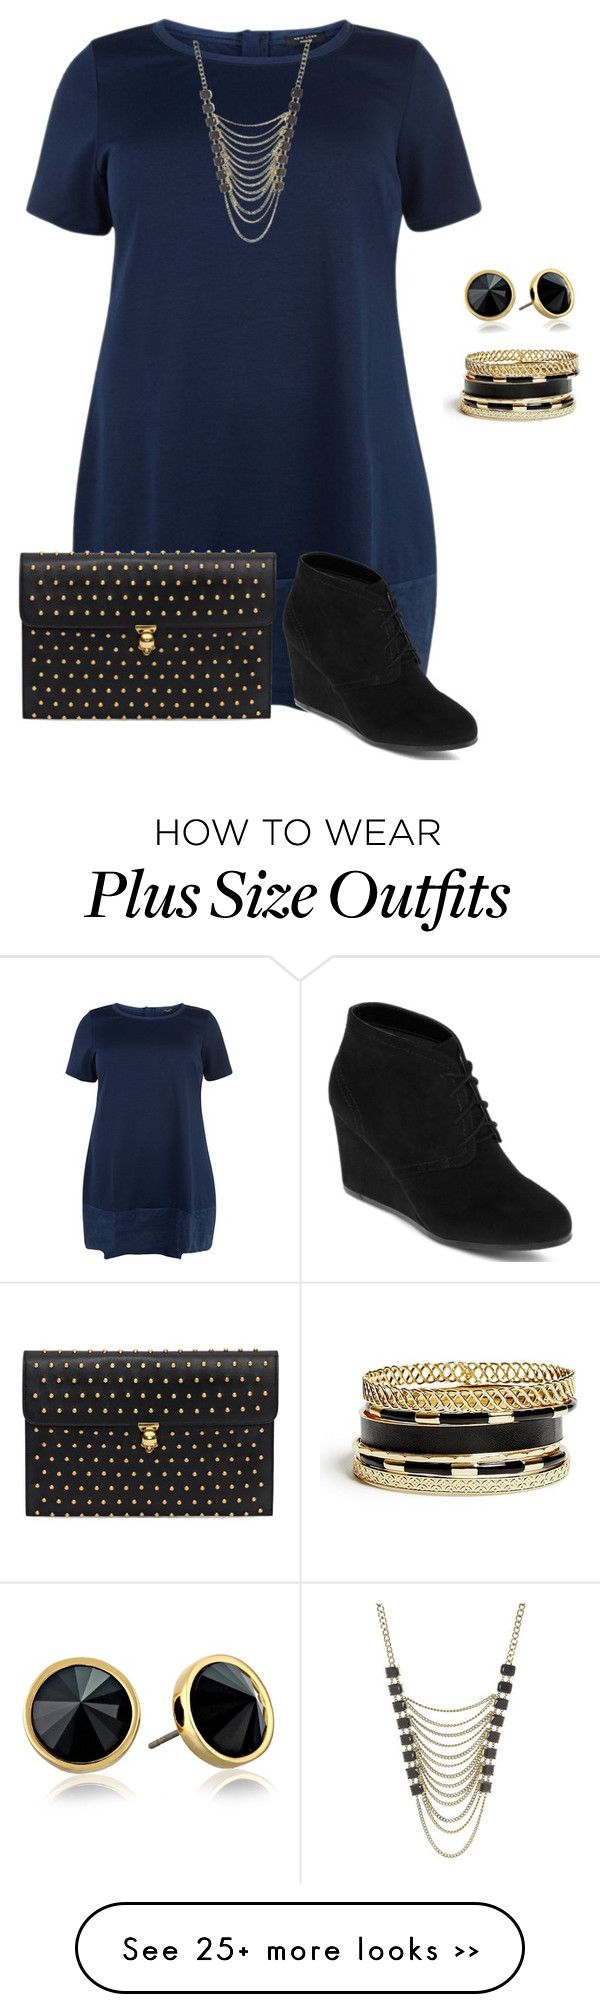 """""""plus size/simple and cute fall datenight look"""" by kristie-payne on Polyvore featuring Lane Bryant, Alexander McQueen, Trina Turk LA, GUESS and Arizona"""